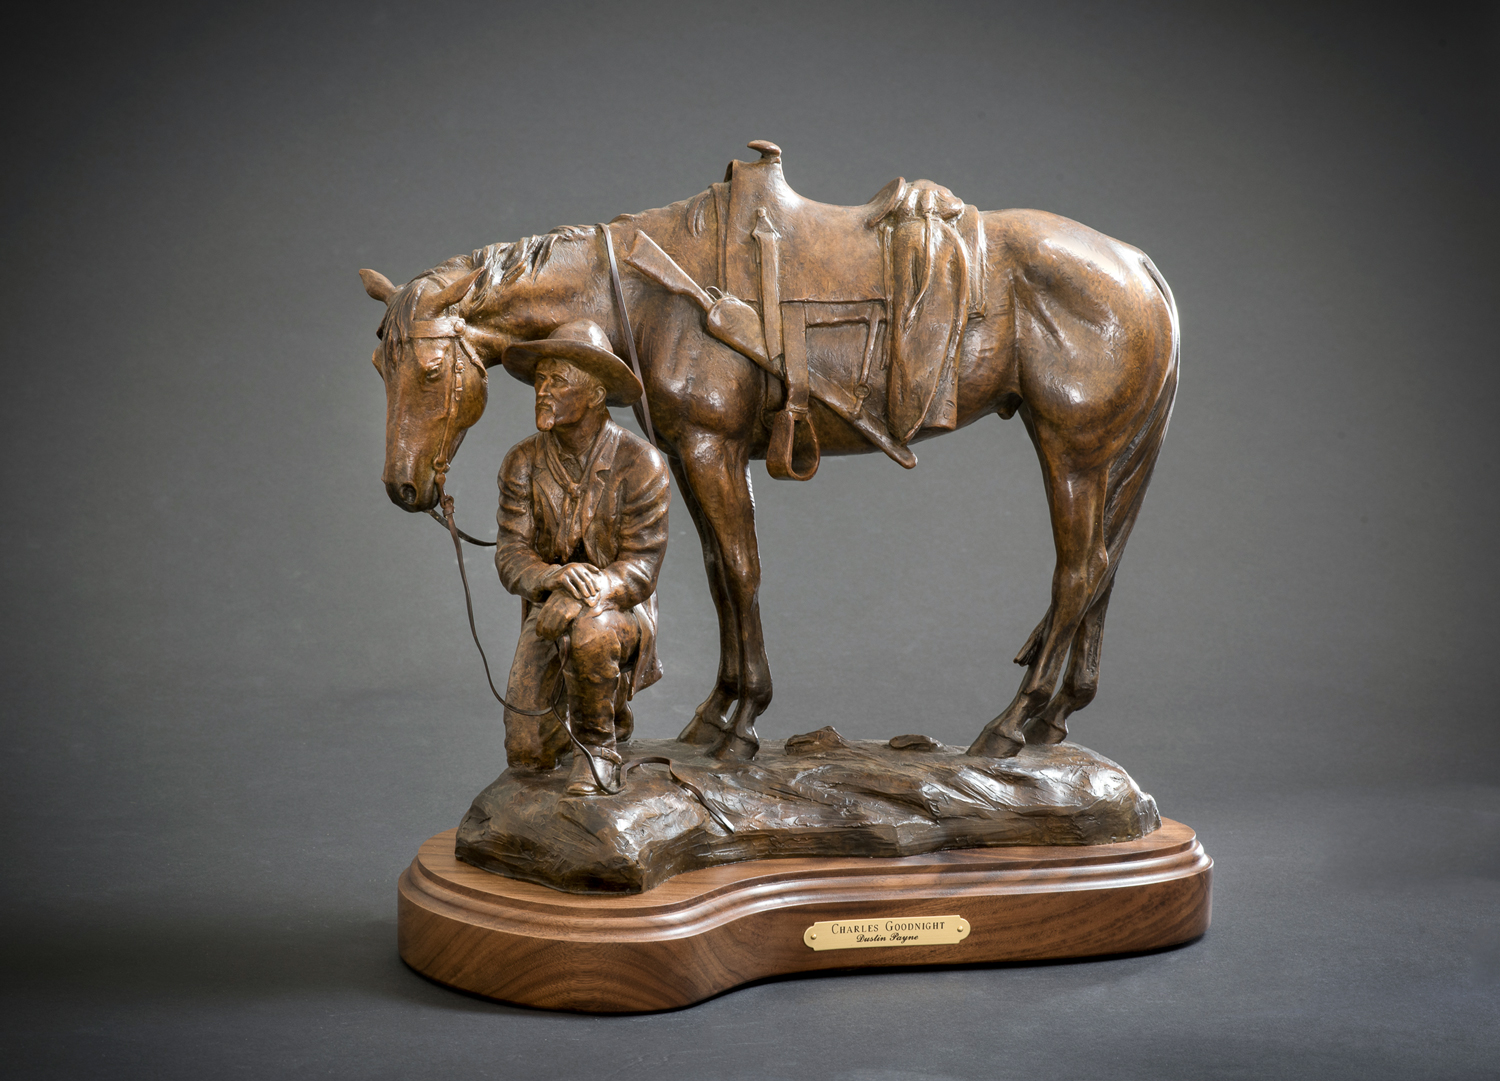 Father of the Trail & Charles Goodnight Life-size Monuments  Installation scheduled for Spring 2019